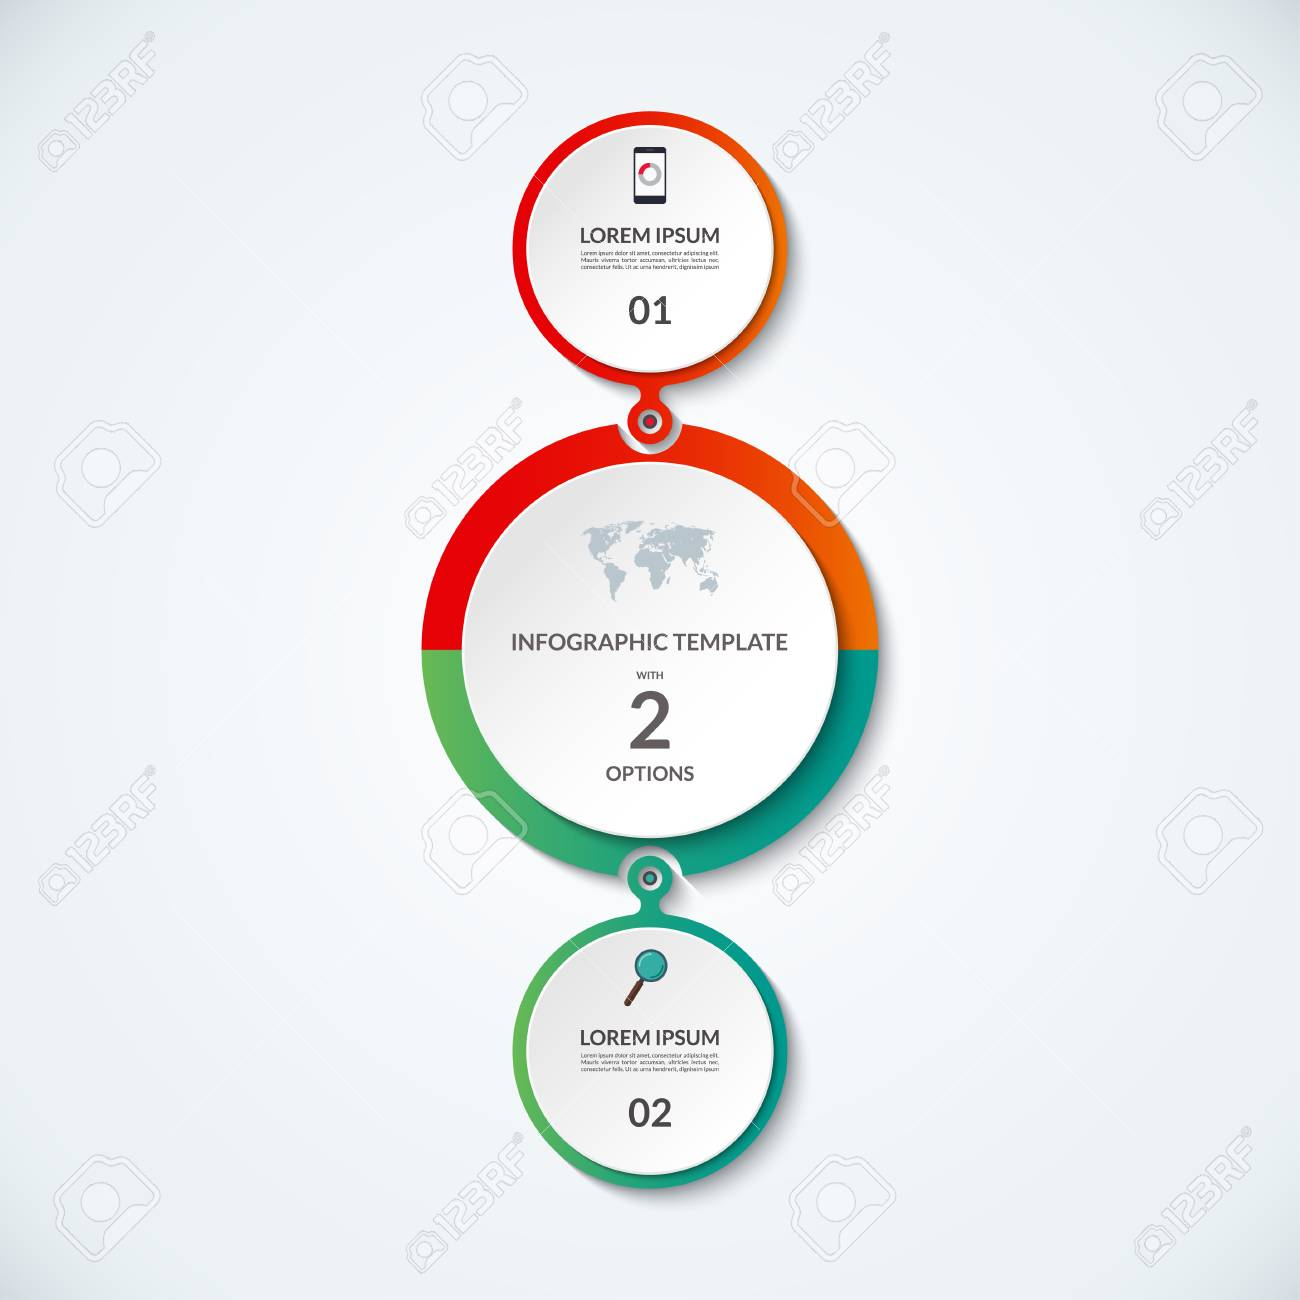 hight resolution of infographic banner with 2 options circular template that can be used as round chart